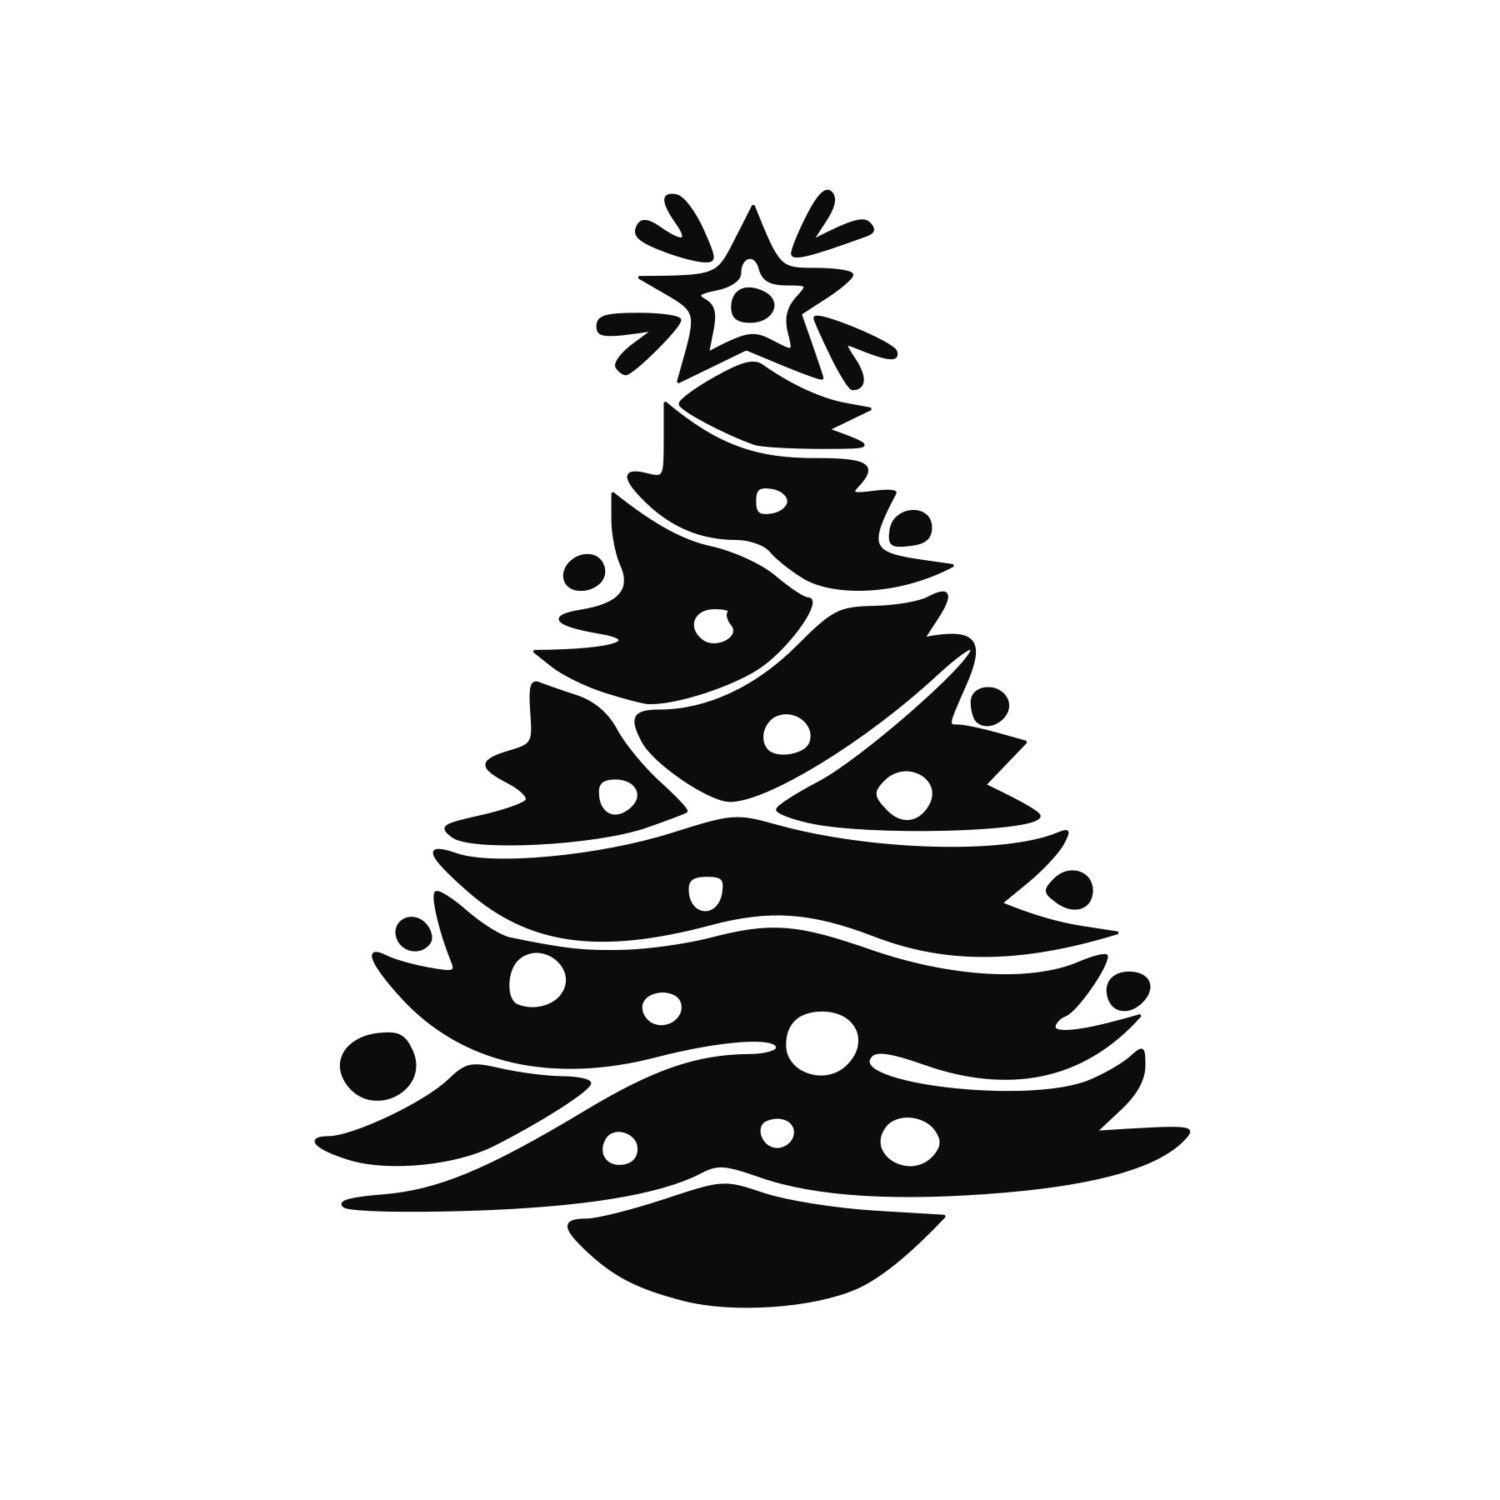 Merry Christmas Tree Vinyl Wall Decal Home Decor Sticker Wall Art 0043  sc 1 st  Get Luxury Womens Mens and Kids Athletic Clothes Jewelry Shoes ... & Merry Christmas Tree Vinyl Wall Decal Home Decor Sticker Wall Art ...